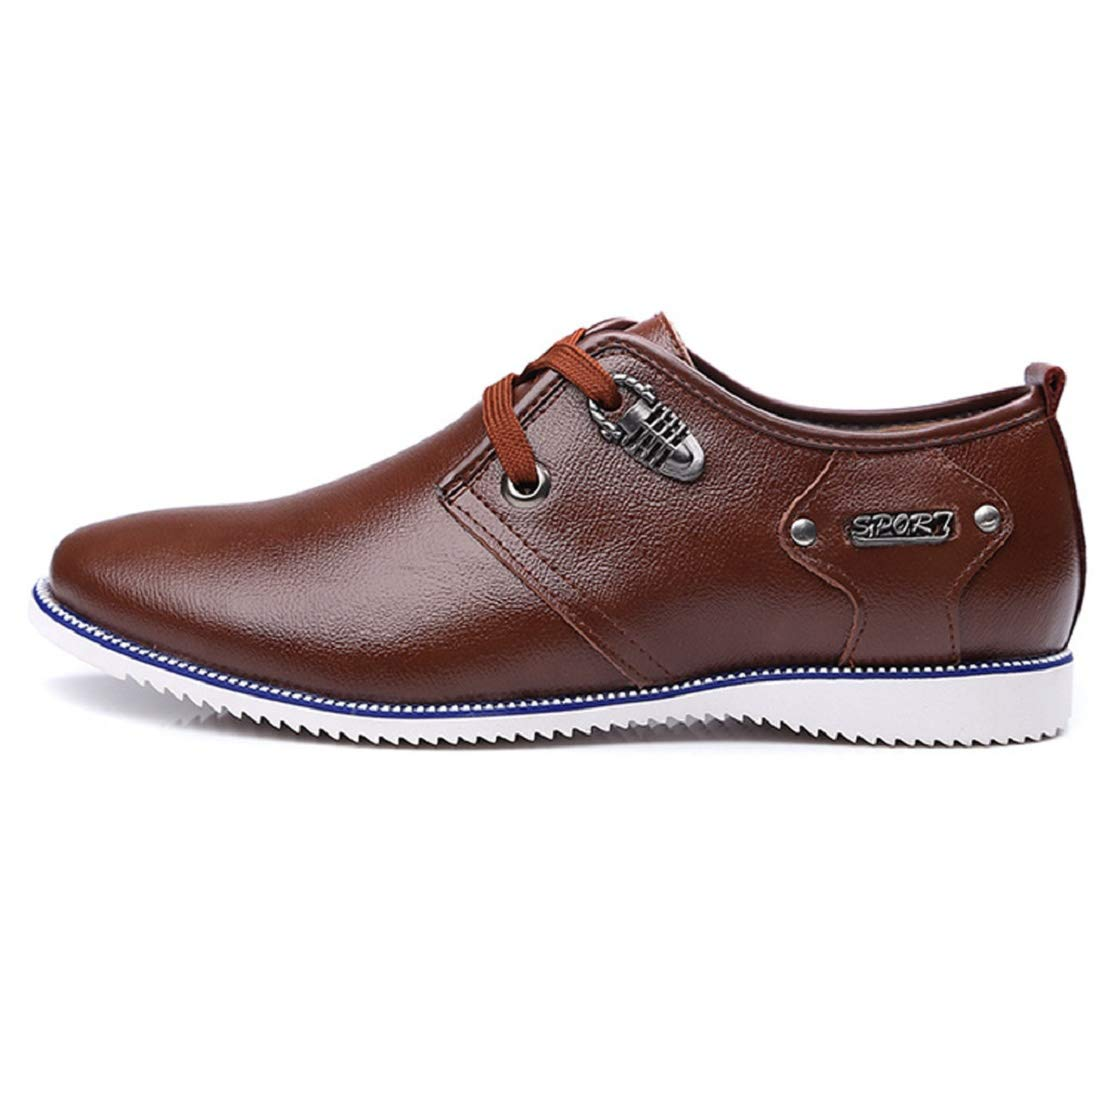 Men's Non Slip Lace up Wingtip Dress Shoes Fashion Leather Casual Driving Shoes Comfort Lined Fashion Shoes by Lowprofile Brown